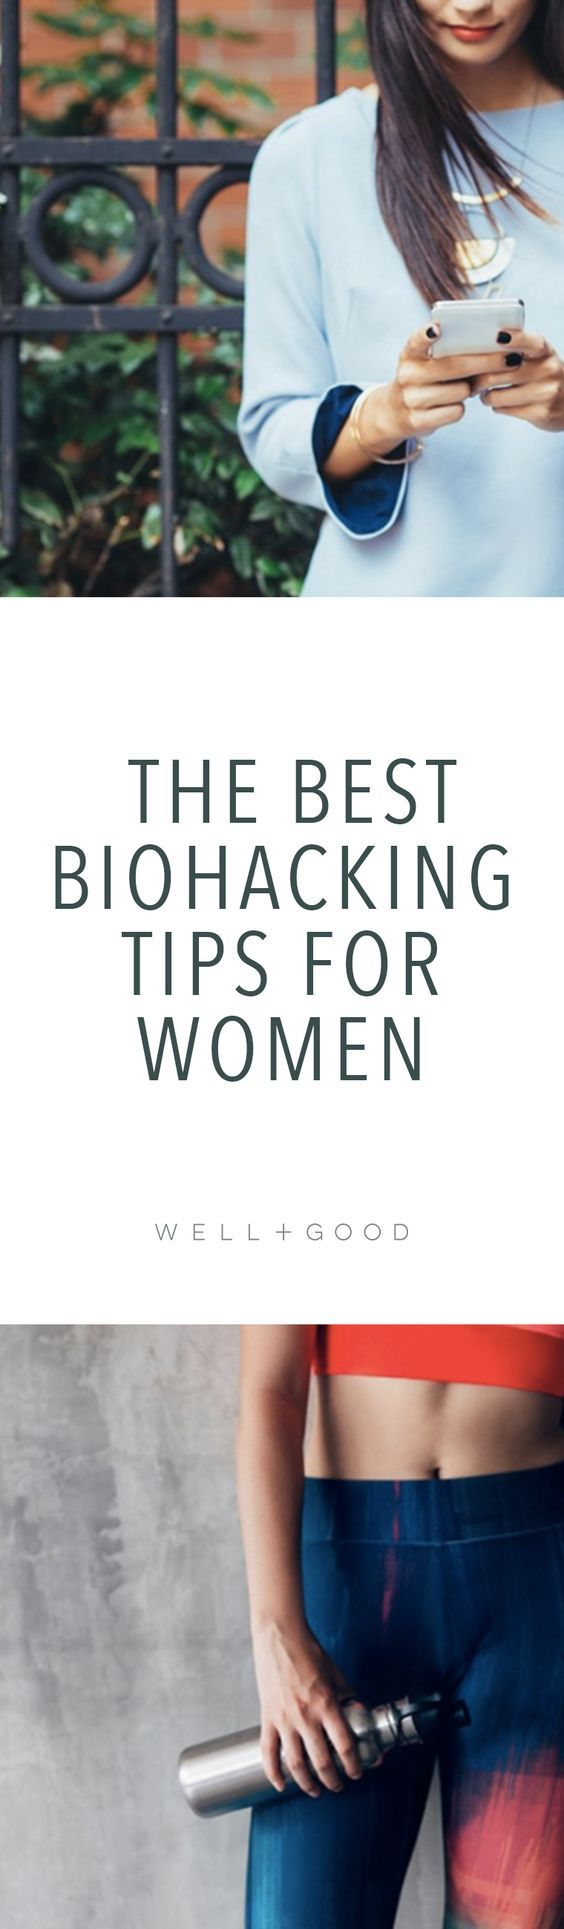 How to biohack for women.